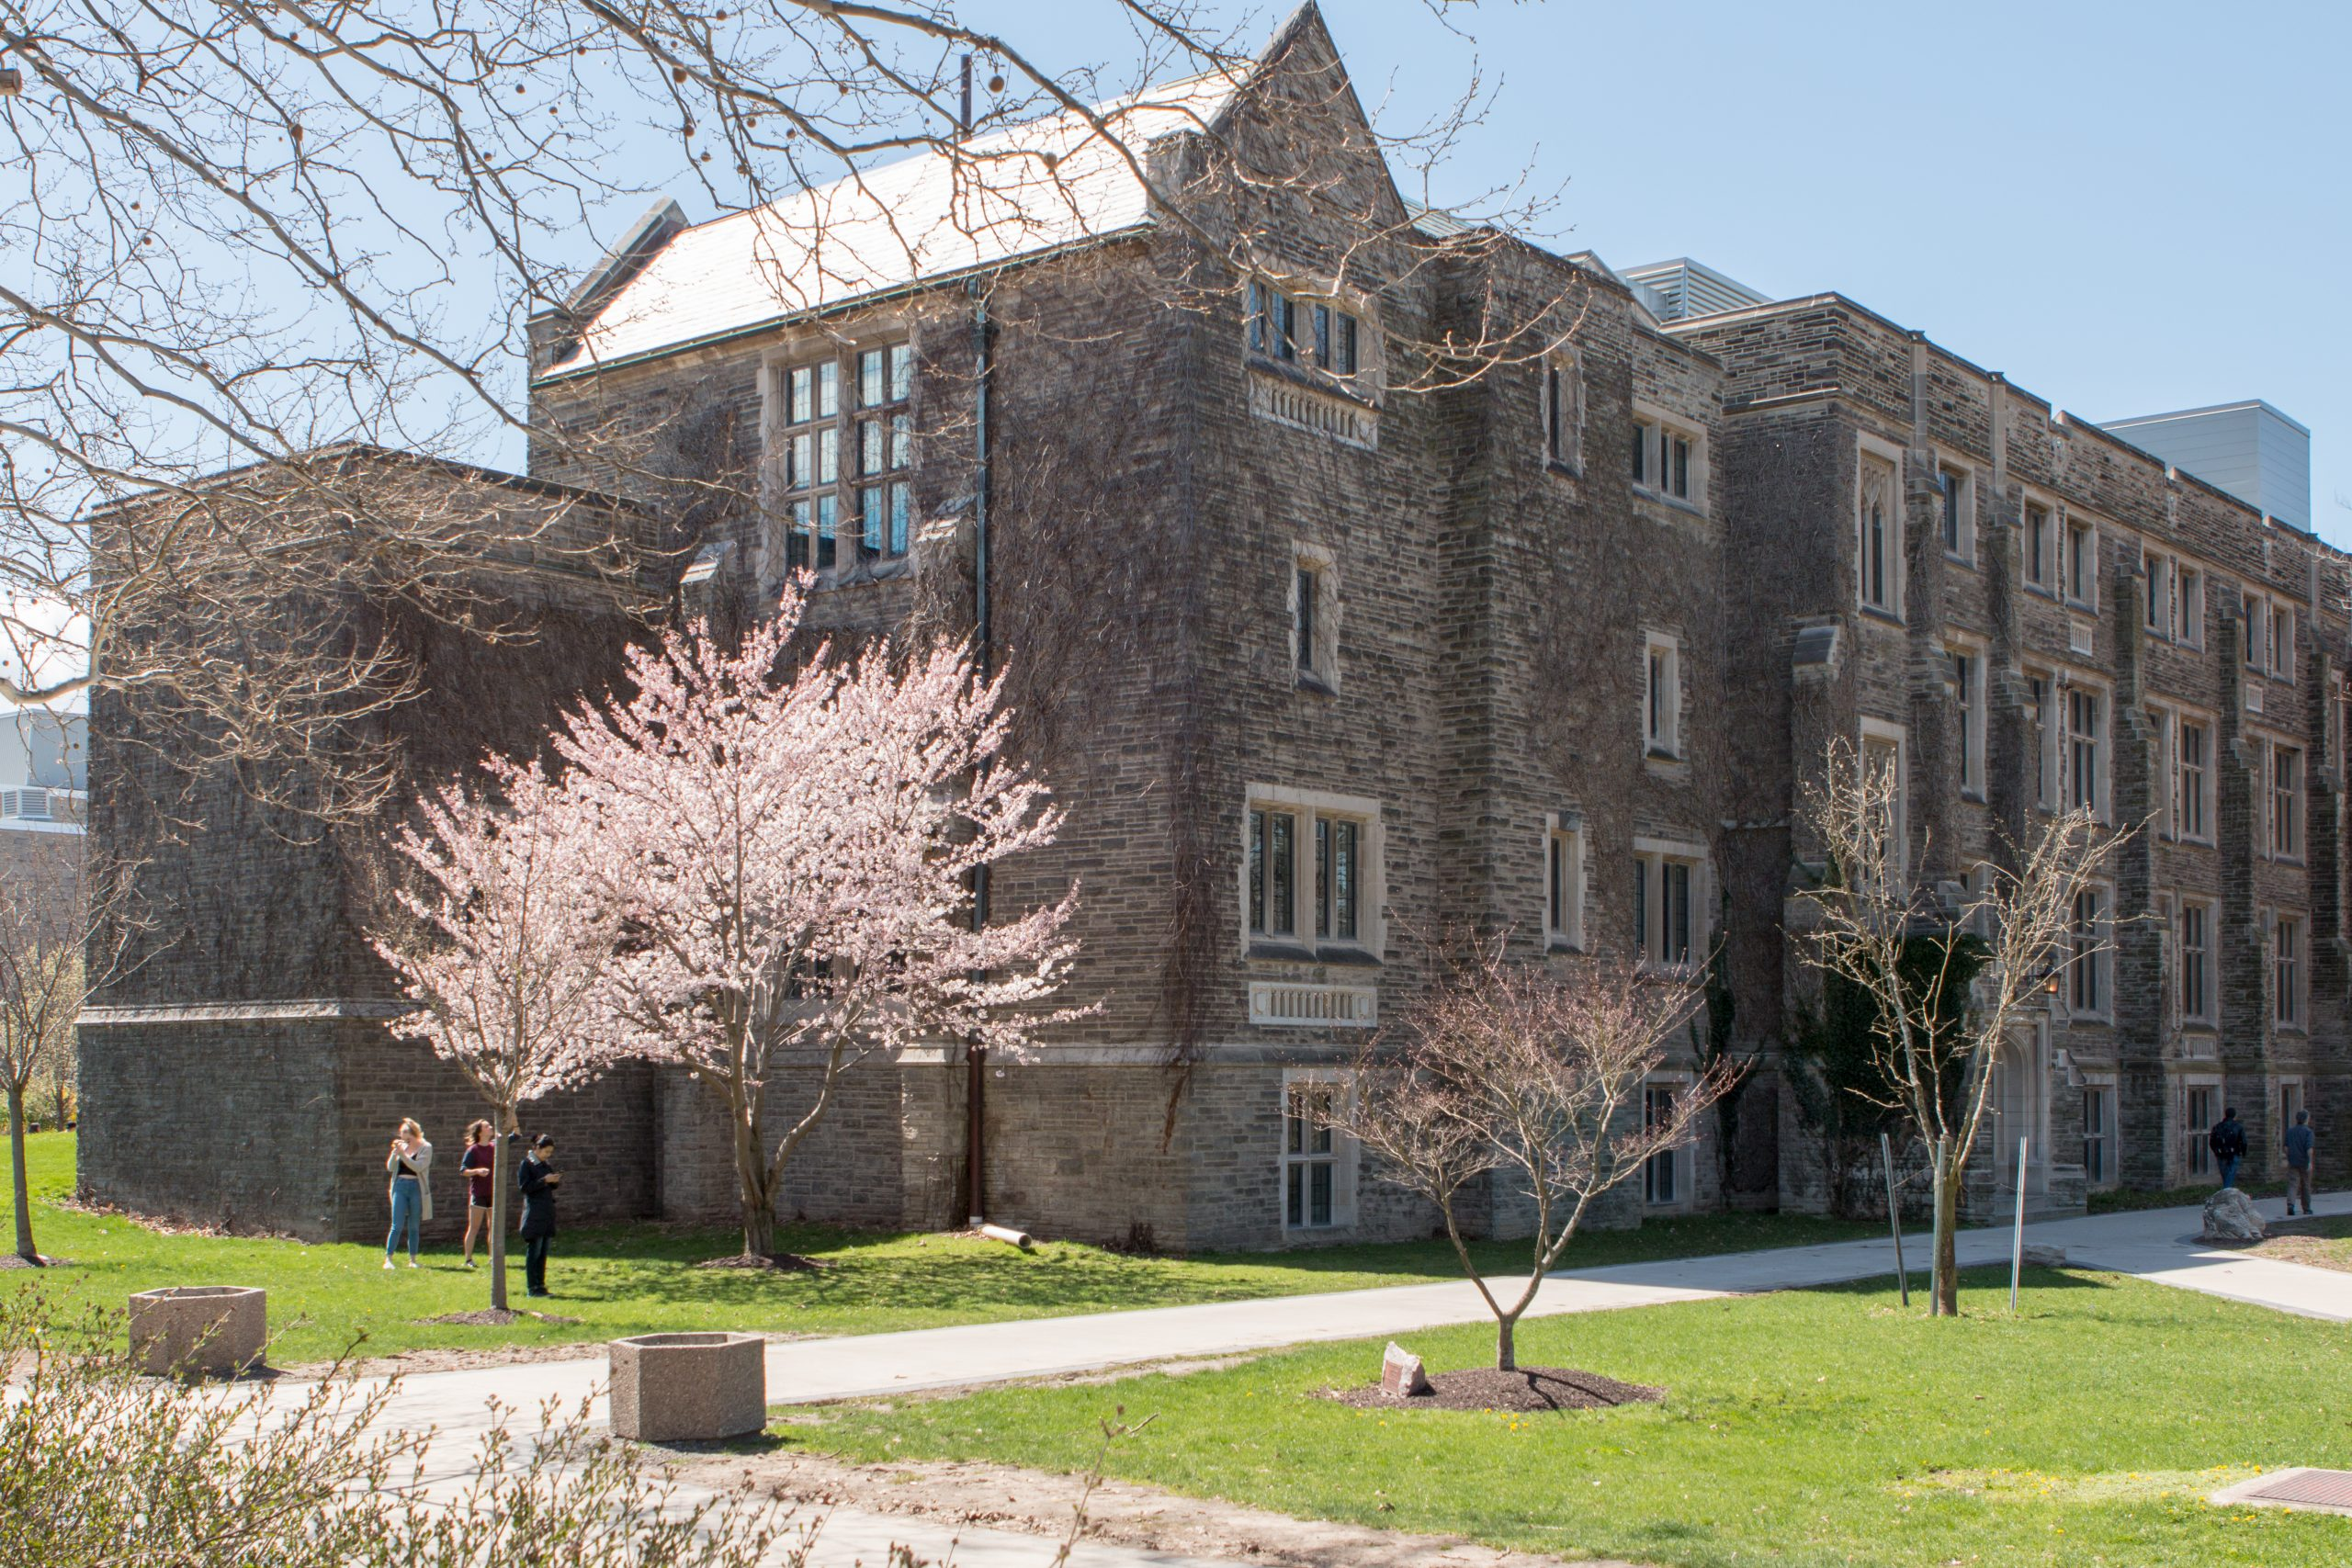 Hamilton Hall building in the spring, with cherry blossom tree blooming.